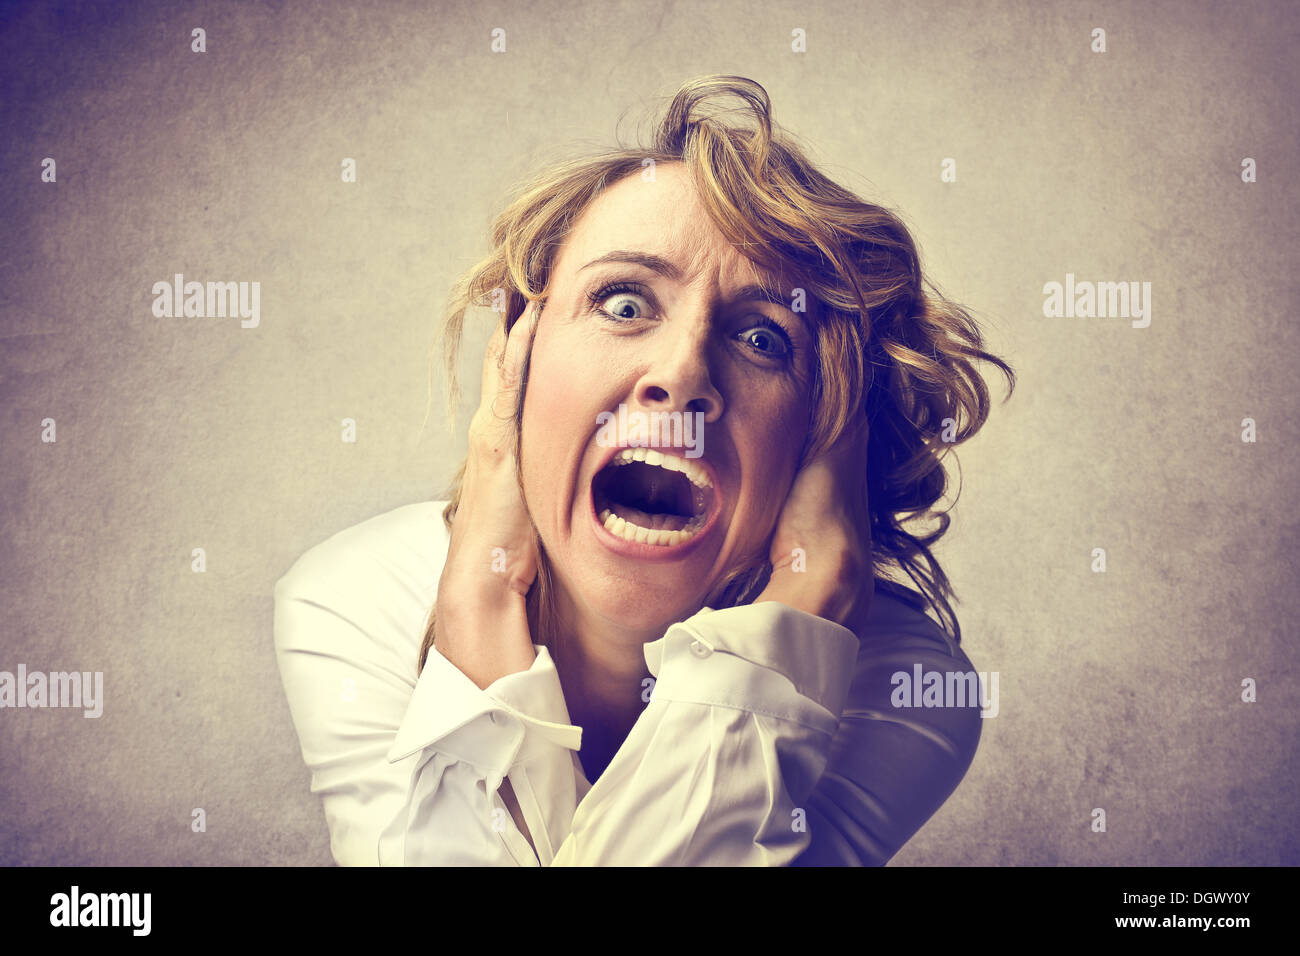 Portrait of a desperate blonde woman screaming - Stock Image